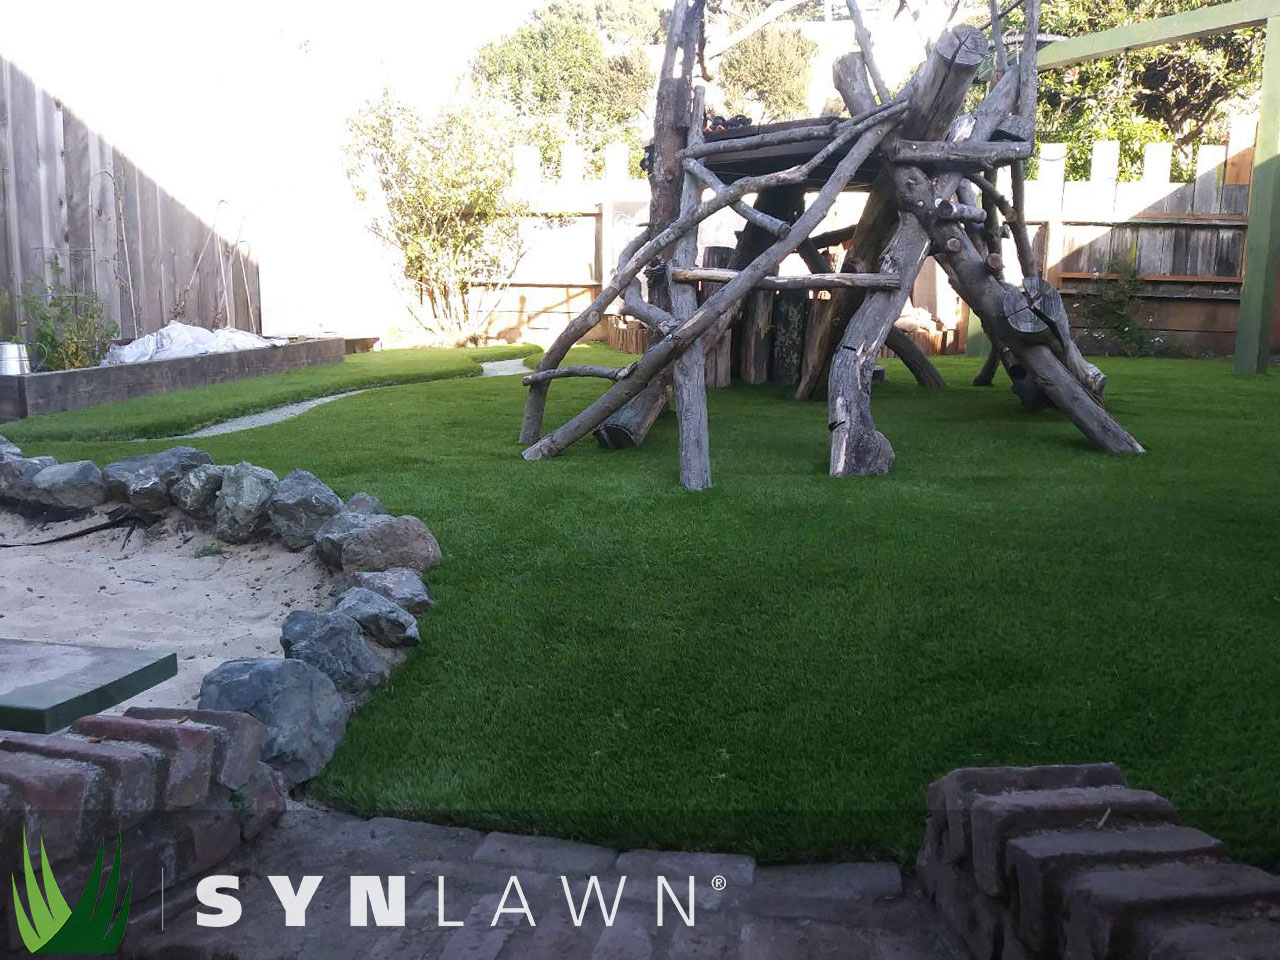 SYNLawn Playground Photo 1